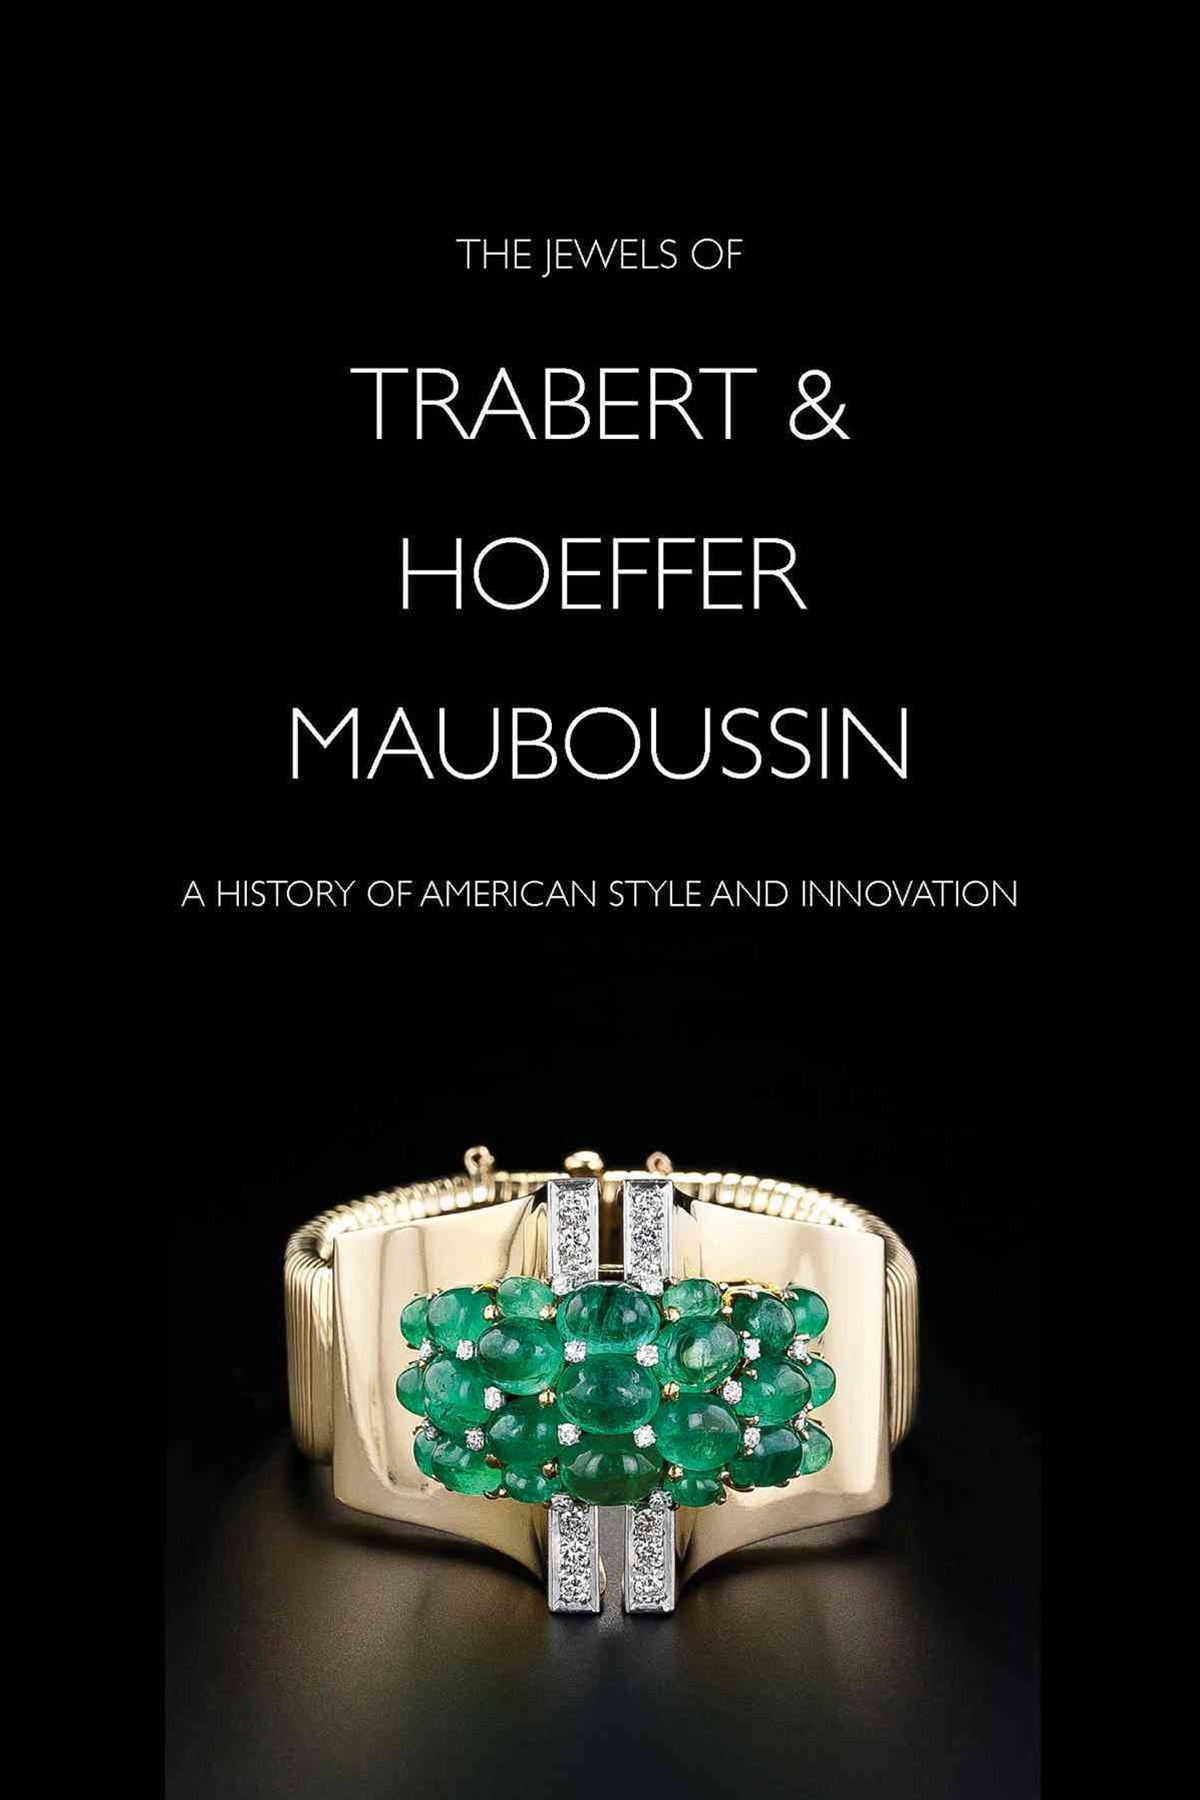 Jewels of Trabert & Hoeffer-Mauboussin